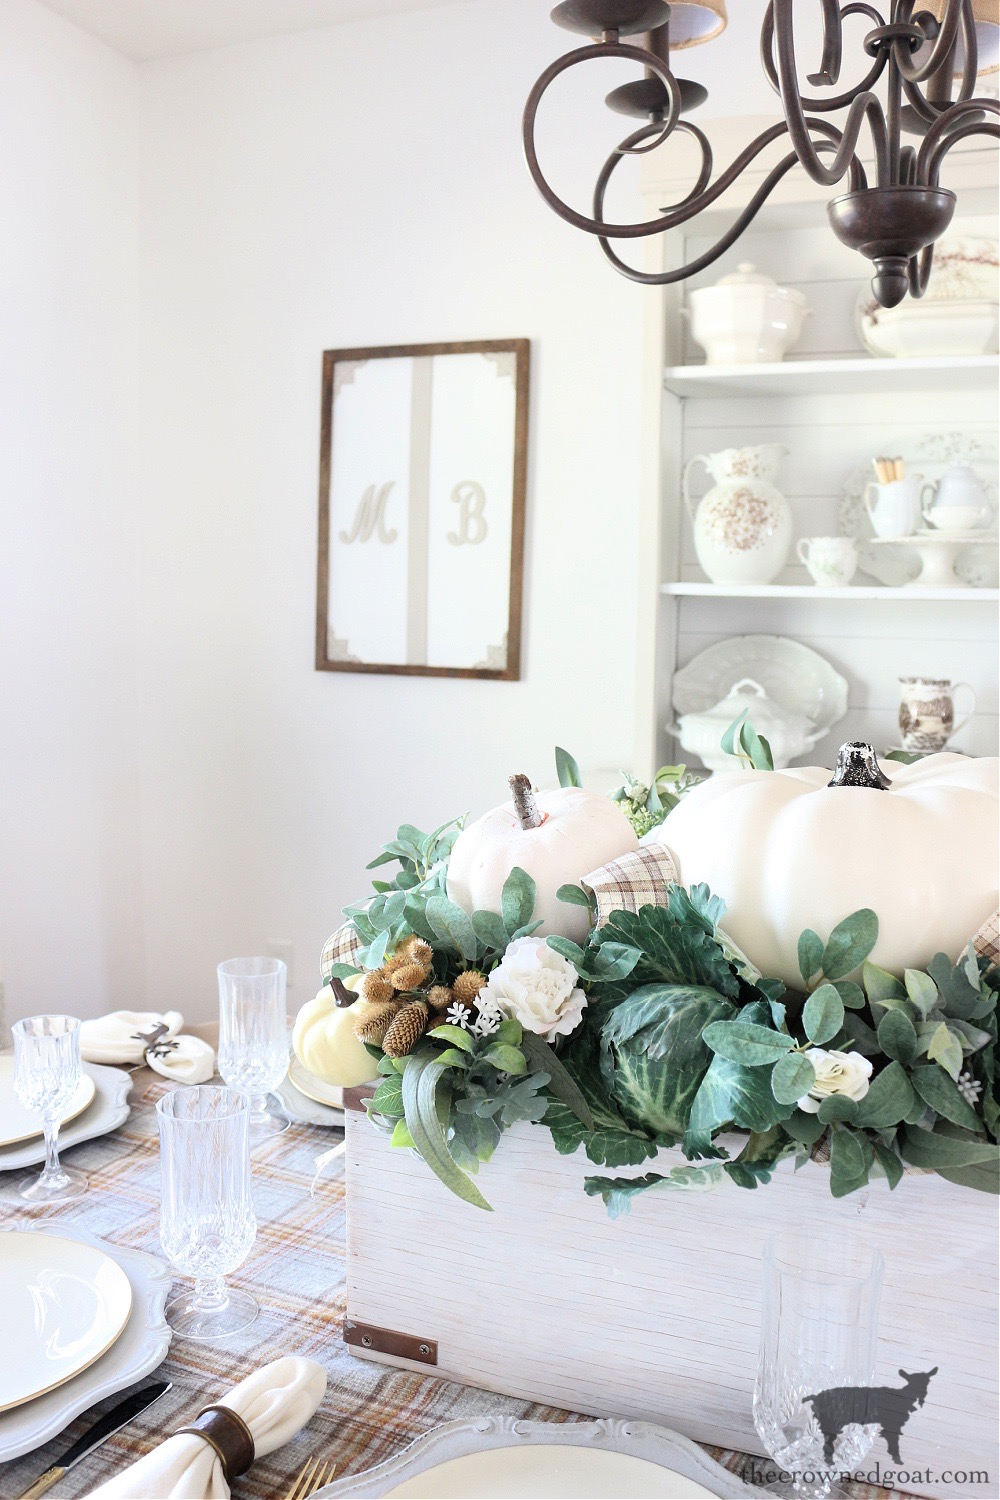 Finding Fall Inspiration by Decorating the Dining Room-The Crowned Goat